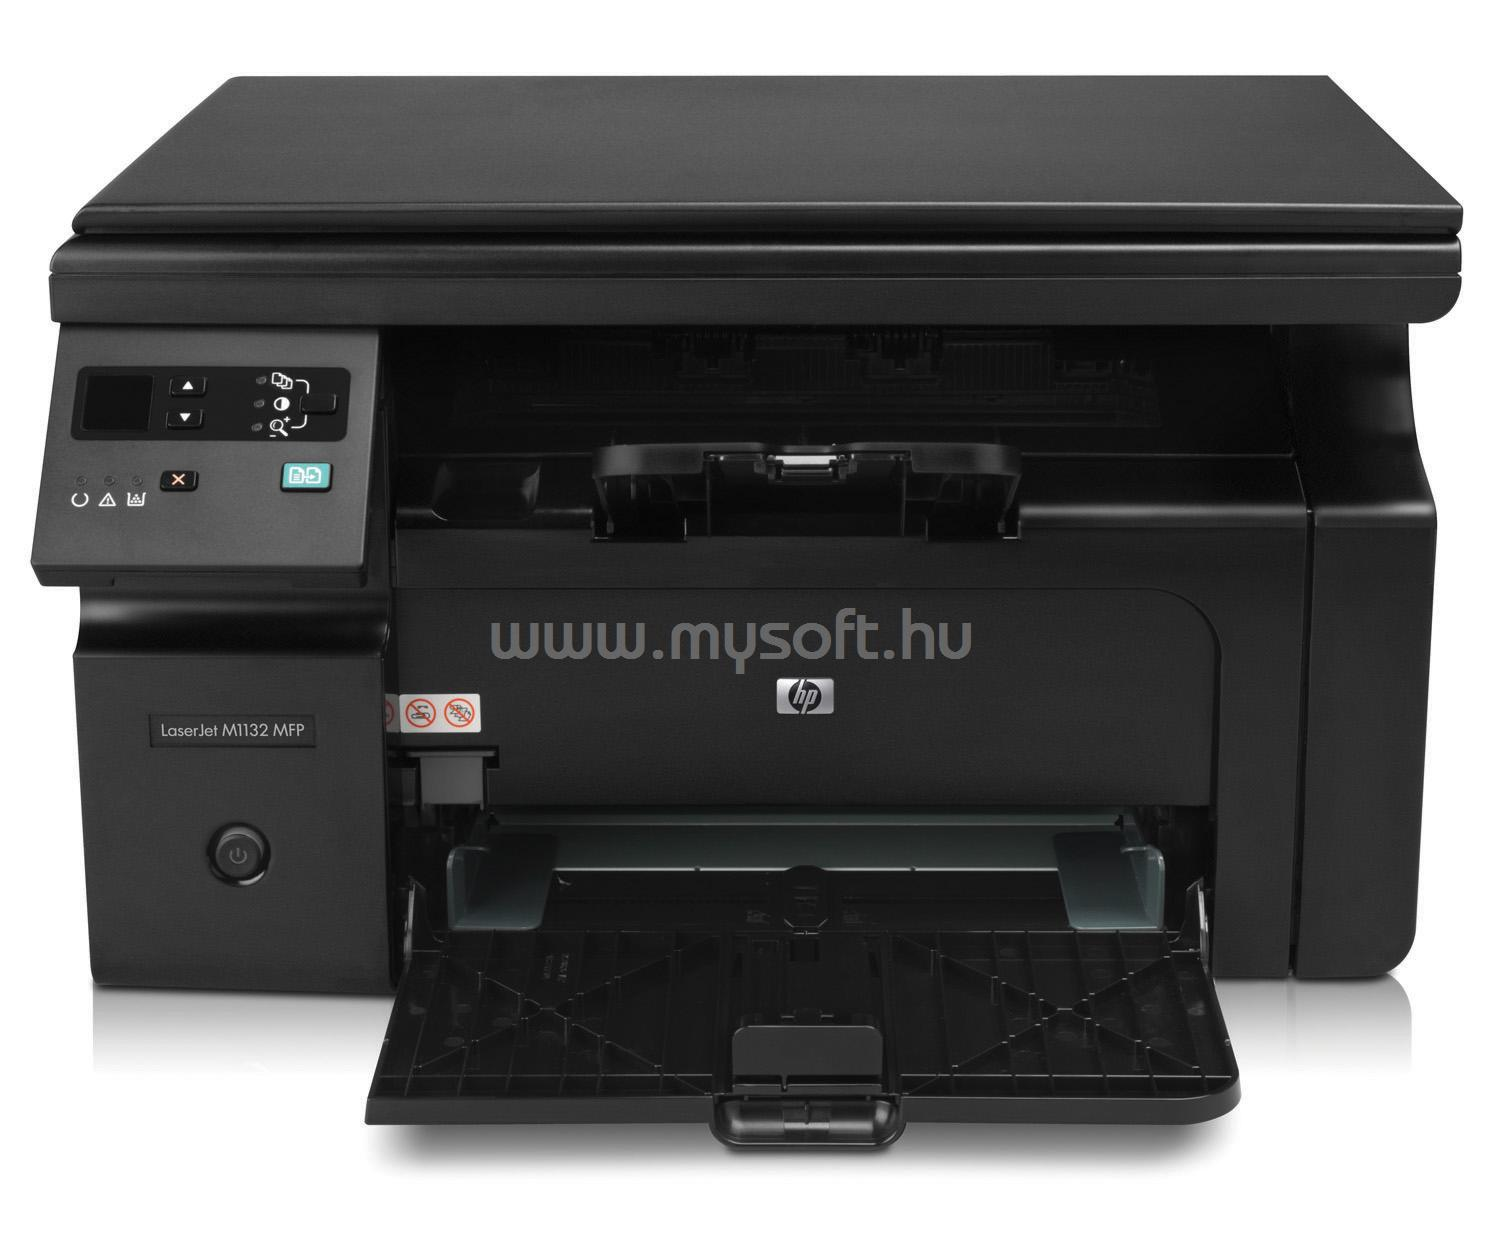 Hp laserjet 1020 plus usb driver